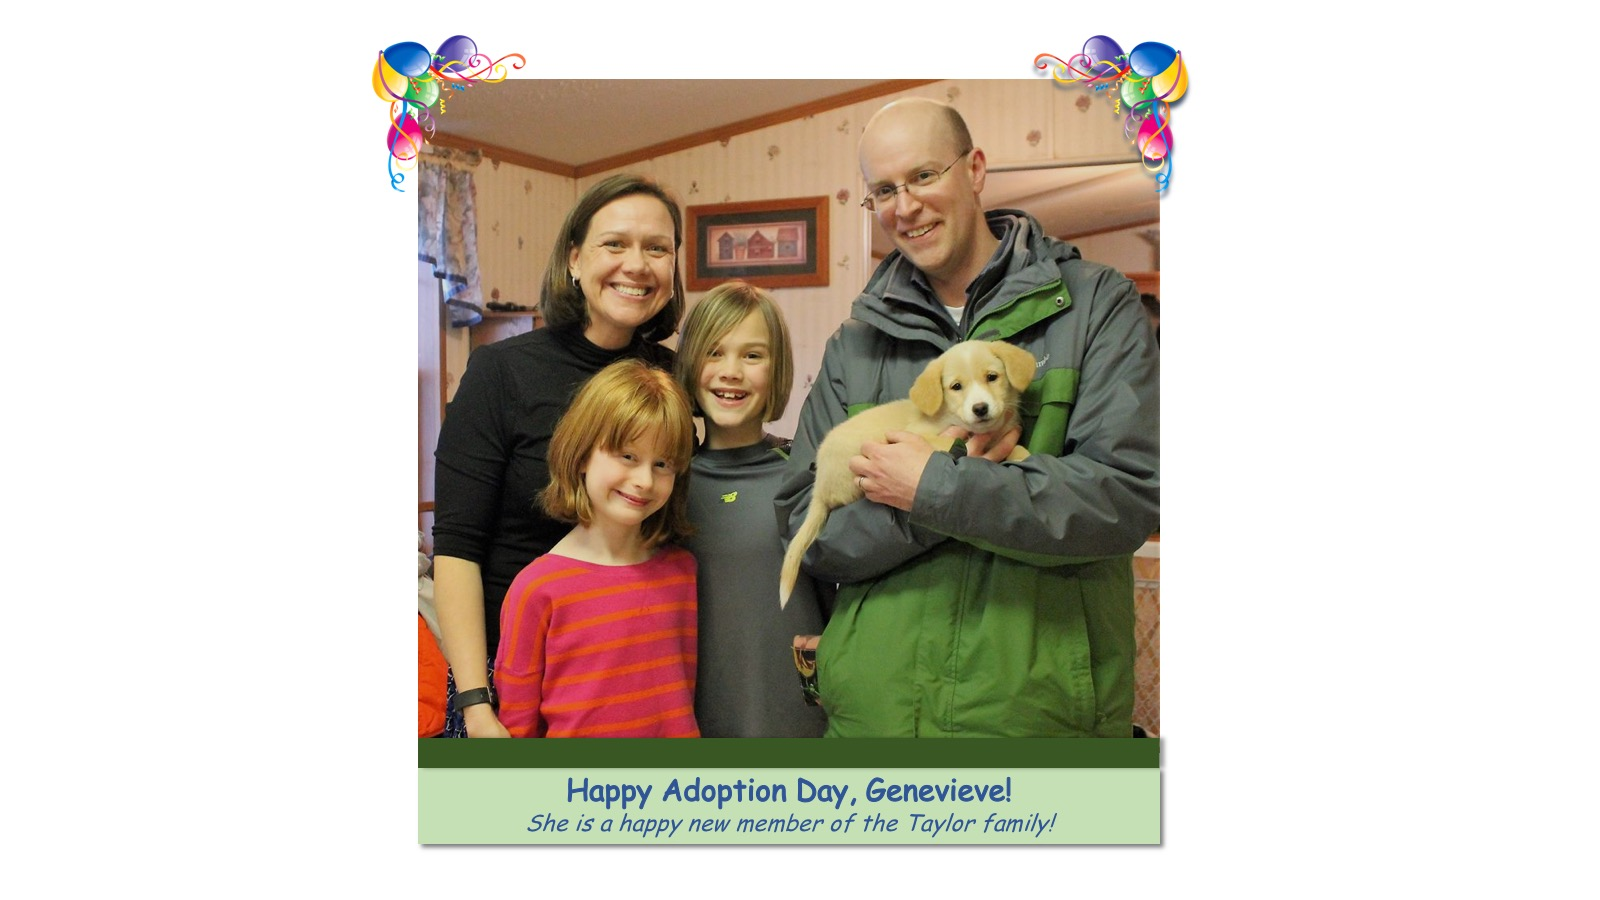 Genevieve_Adoption_Photo_2018.jpg